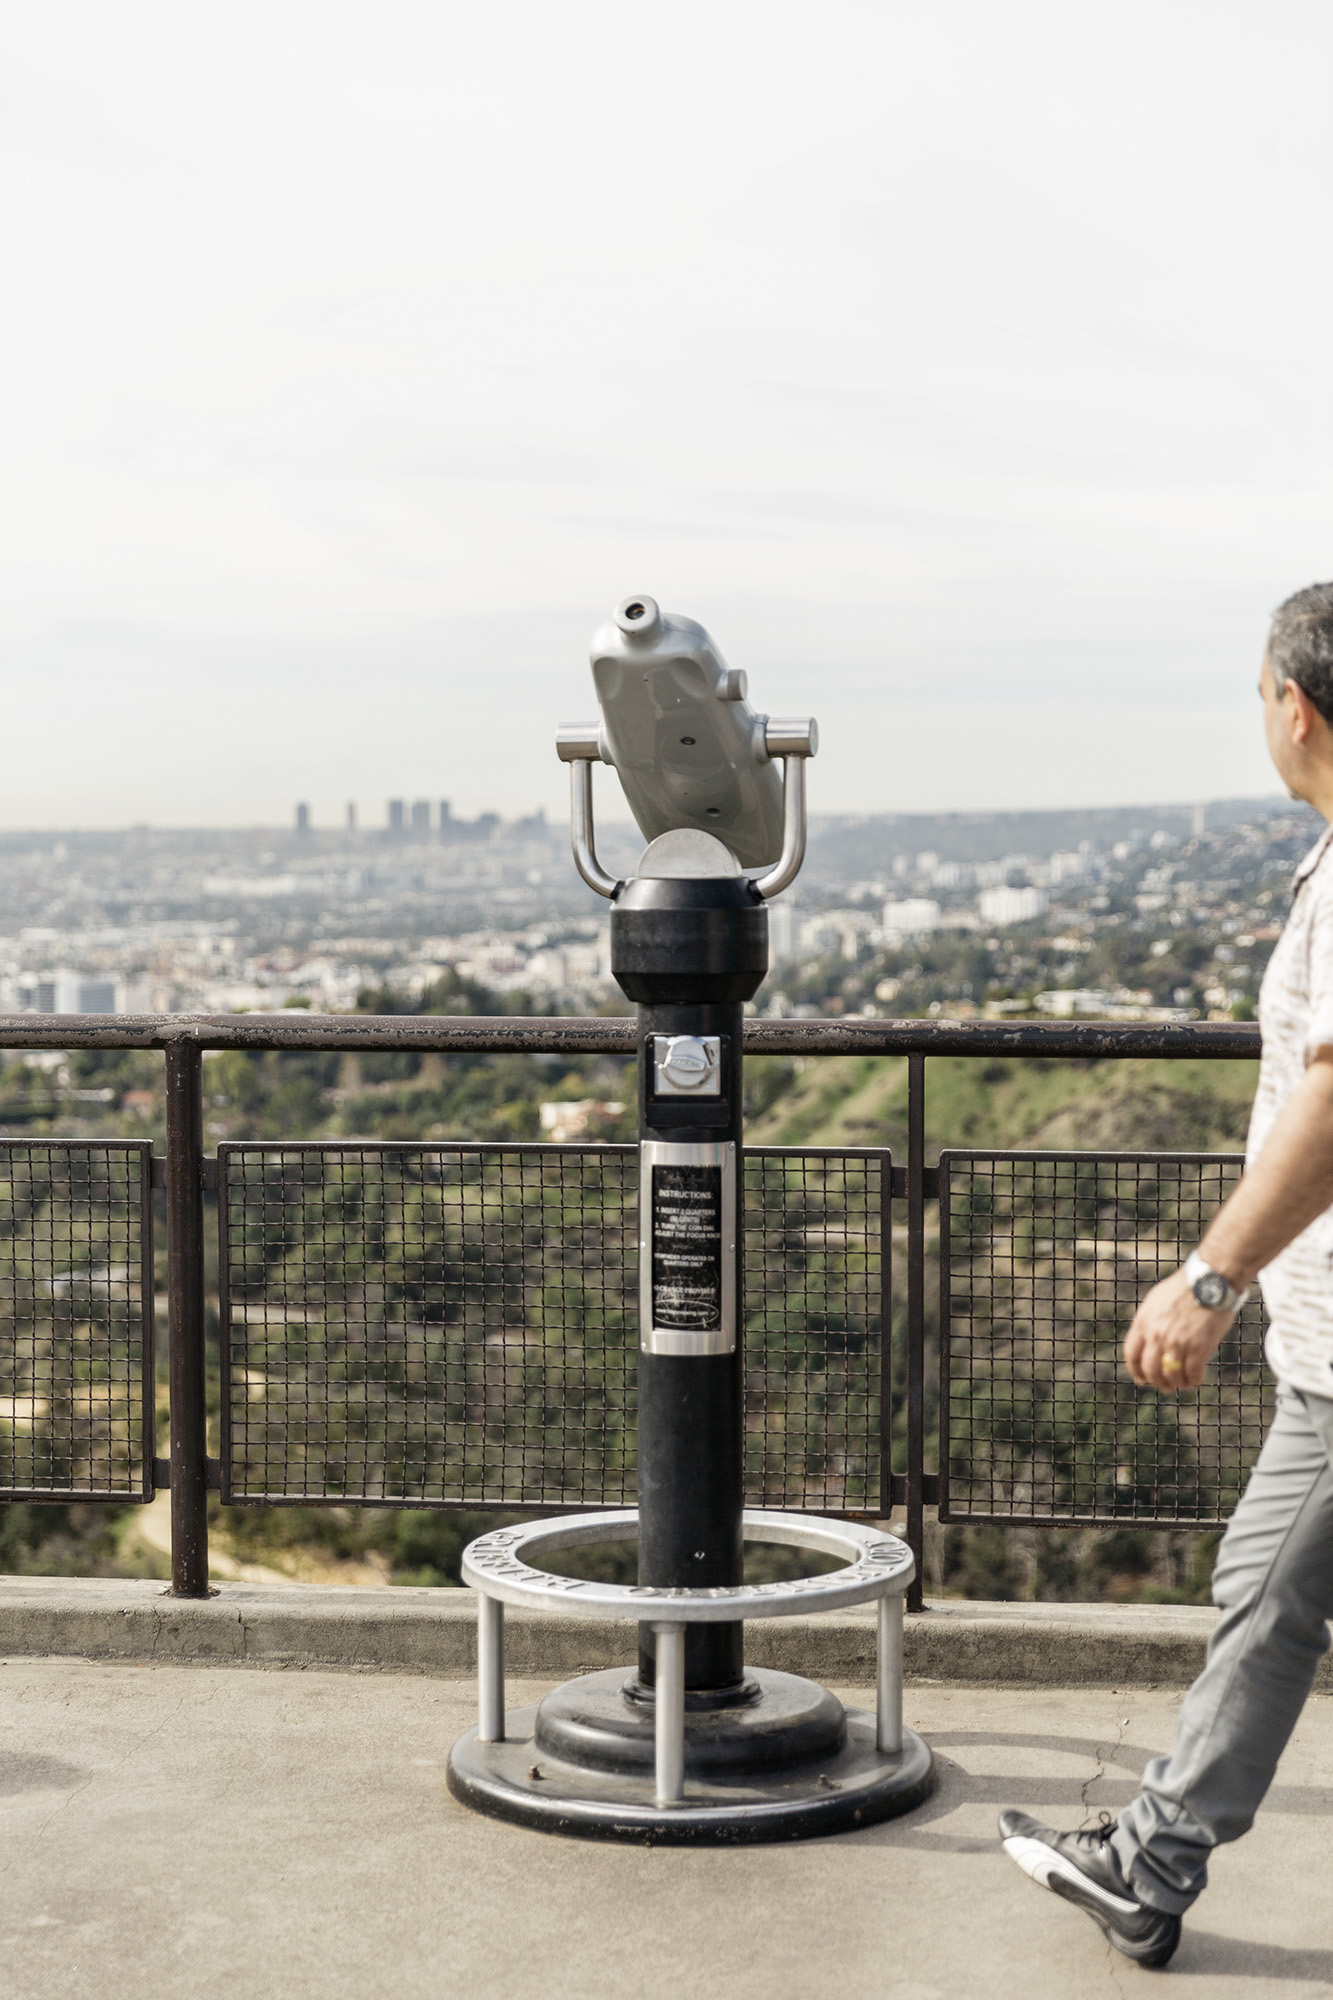 A man enjoys the view of Los Angeles from the Griffith Observatory by Denver Boulder Colorado Editorial and Commercial Photographer Rebecca Stumpf, specializing in food, lifestyle, and travel.